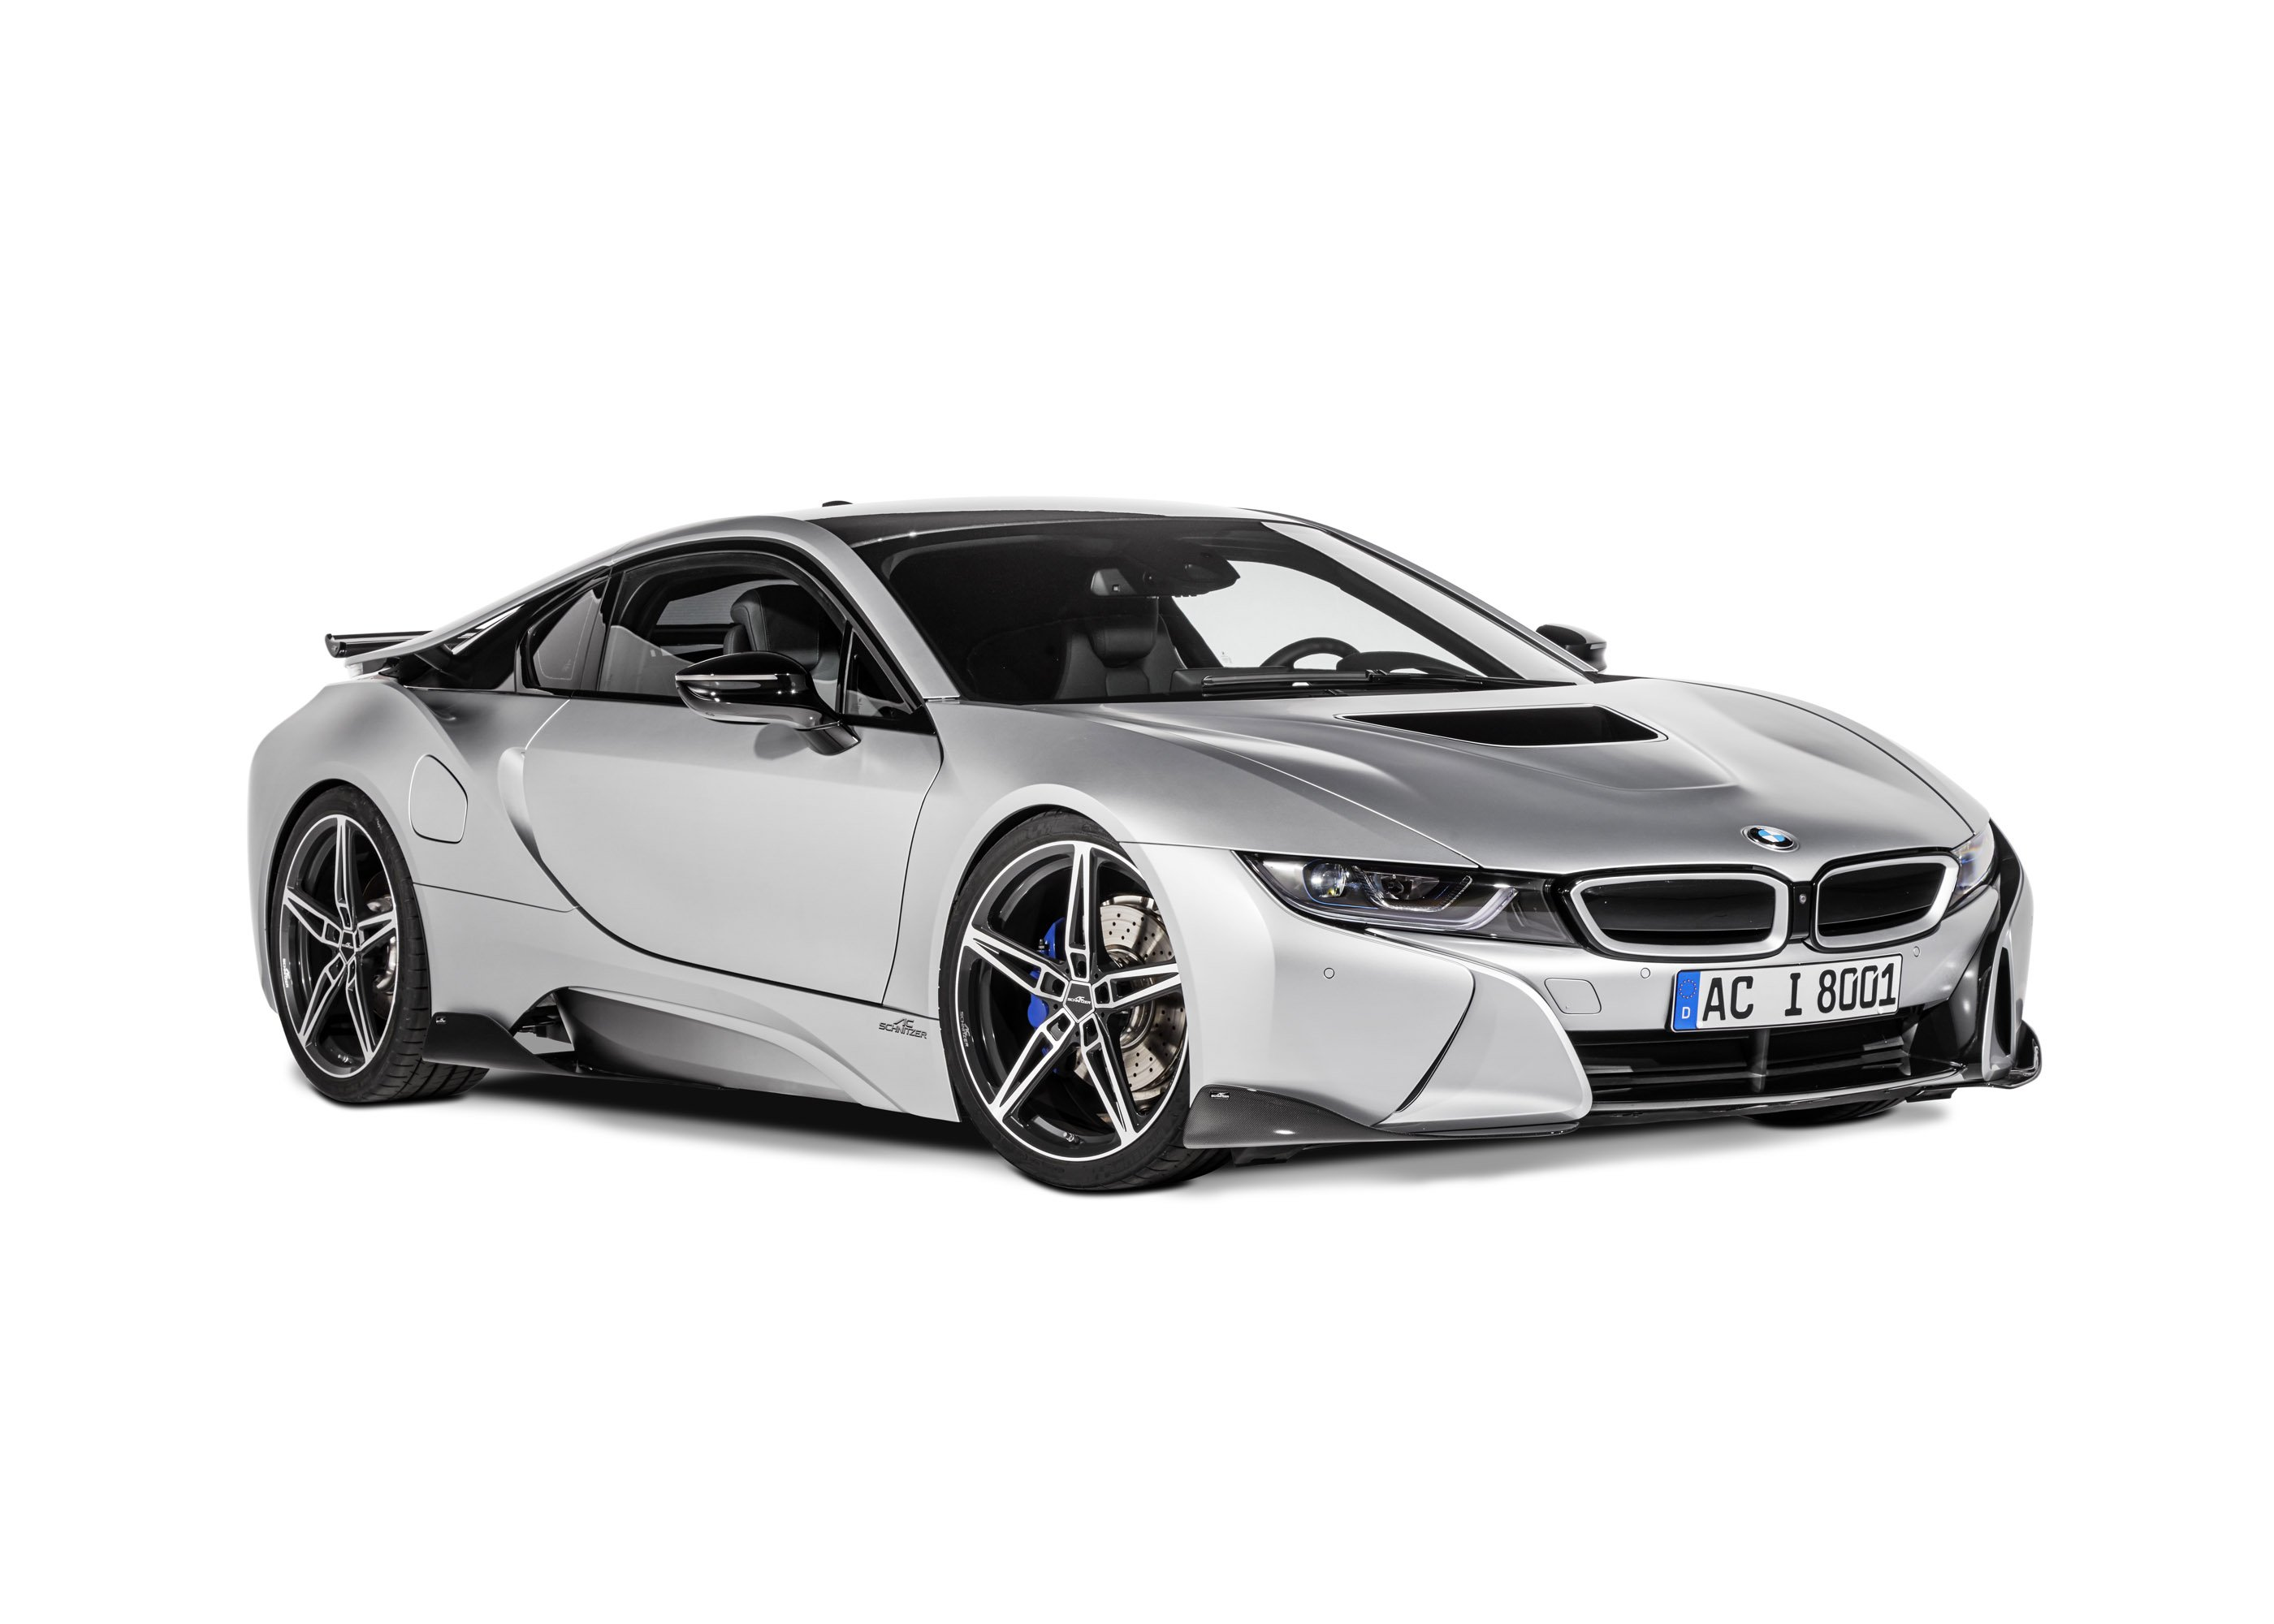 2015 Ac Schnitzer Bmw I8 Coupe Cars Electric Modified Tuning